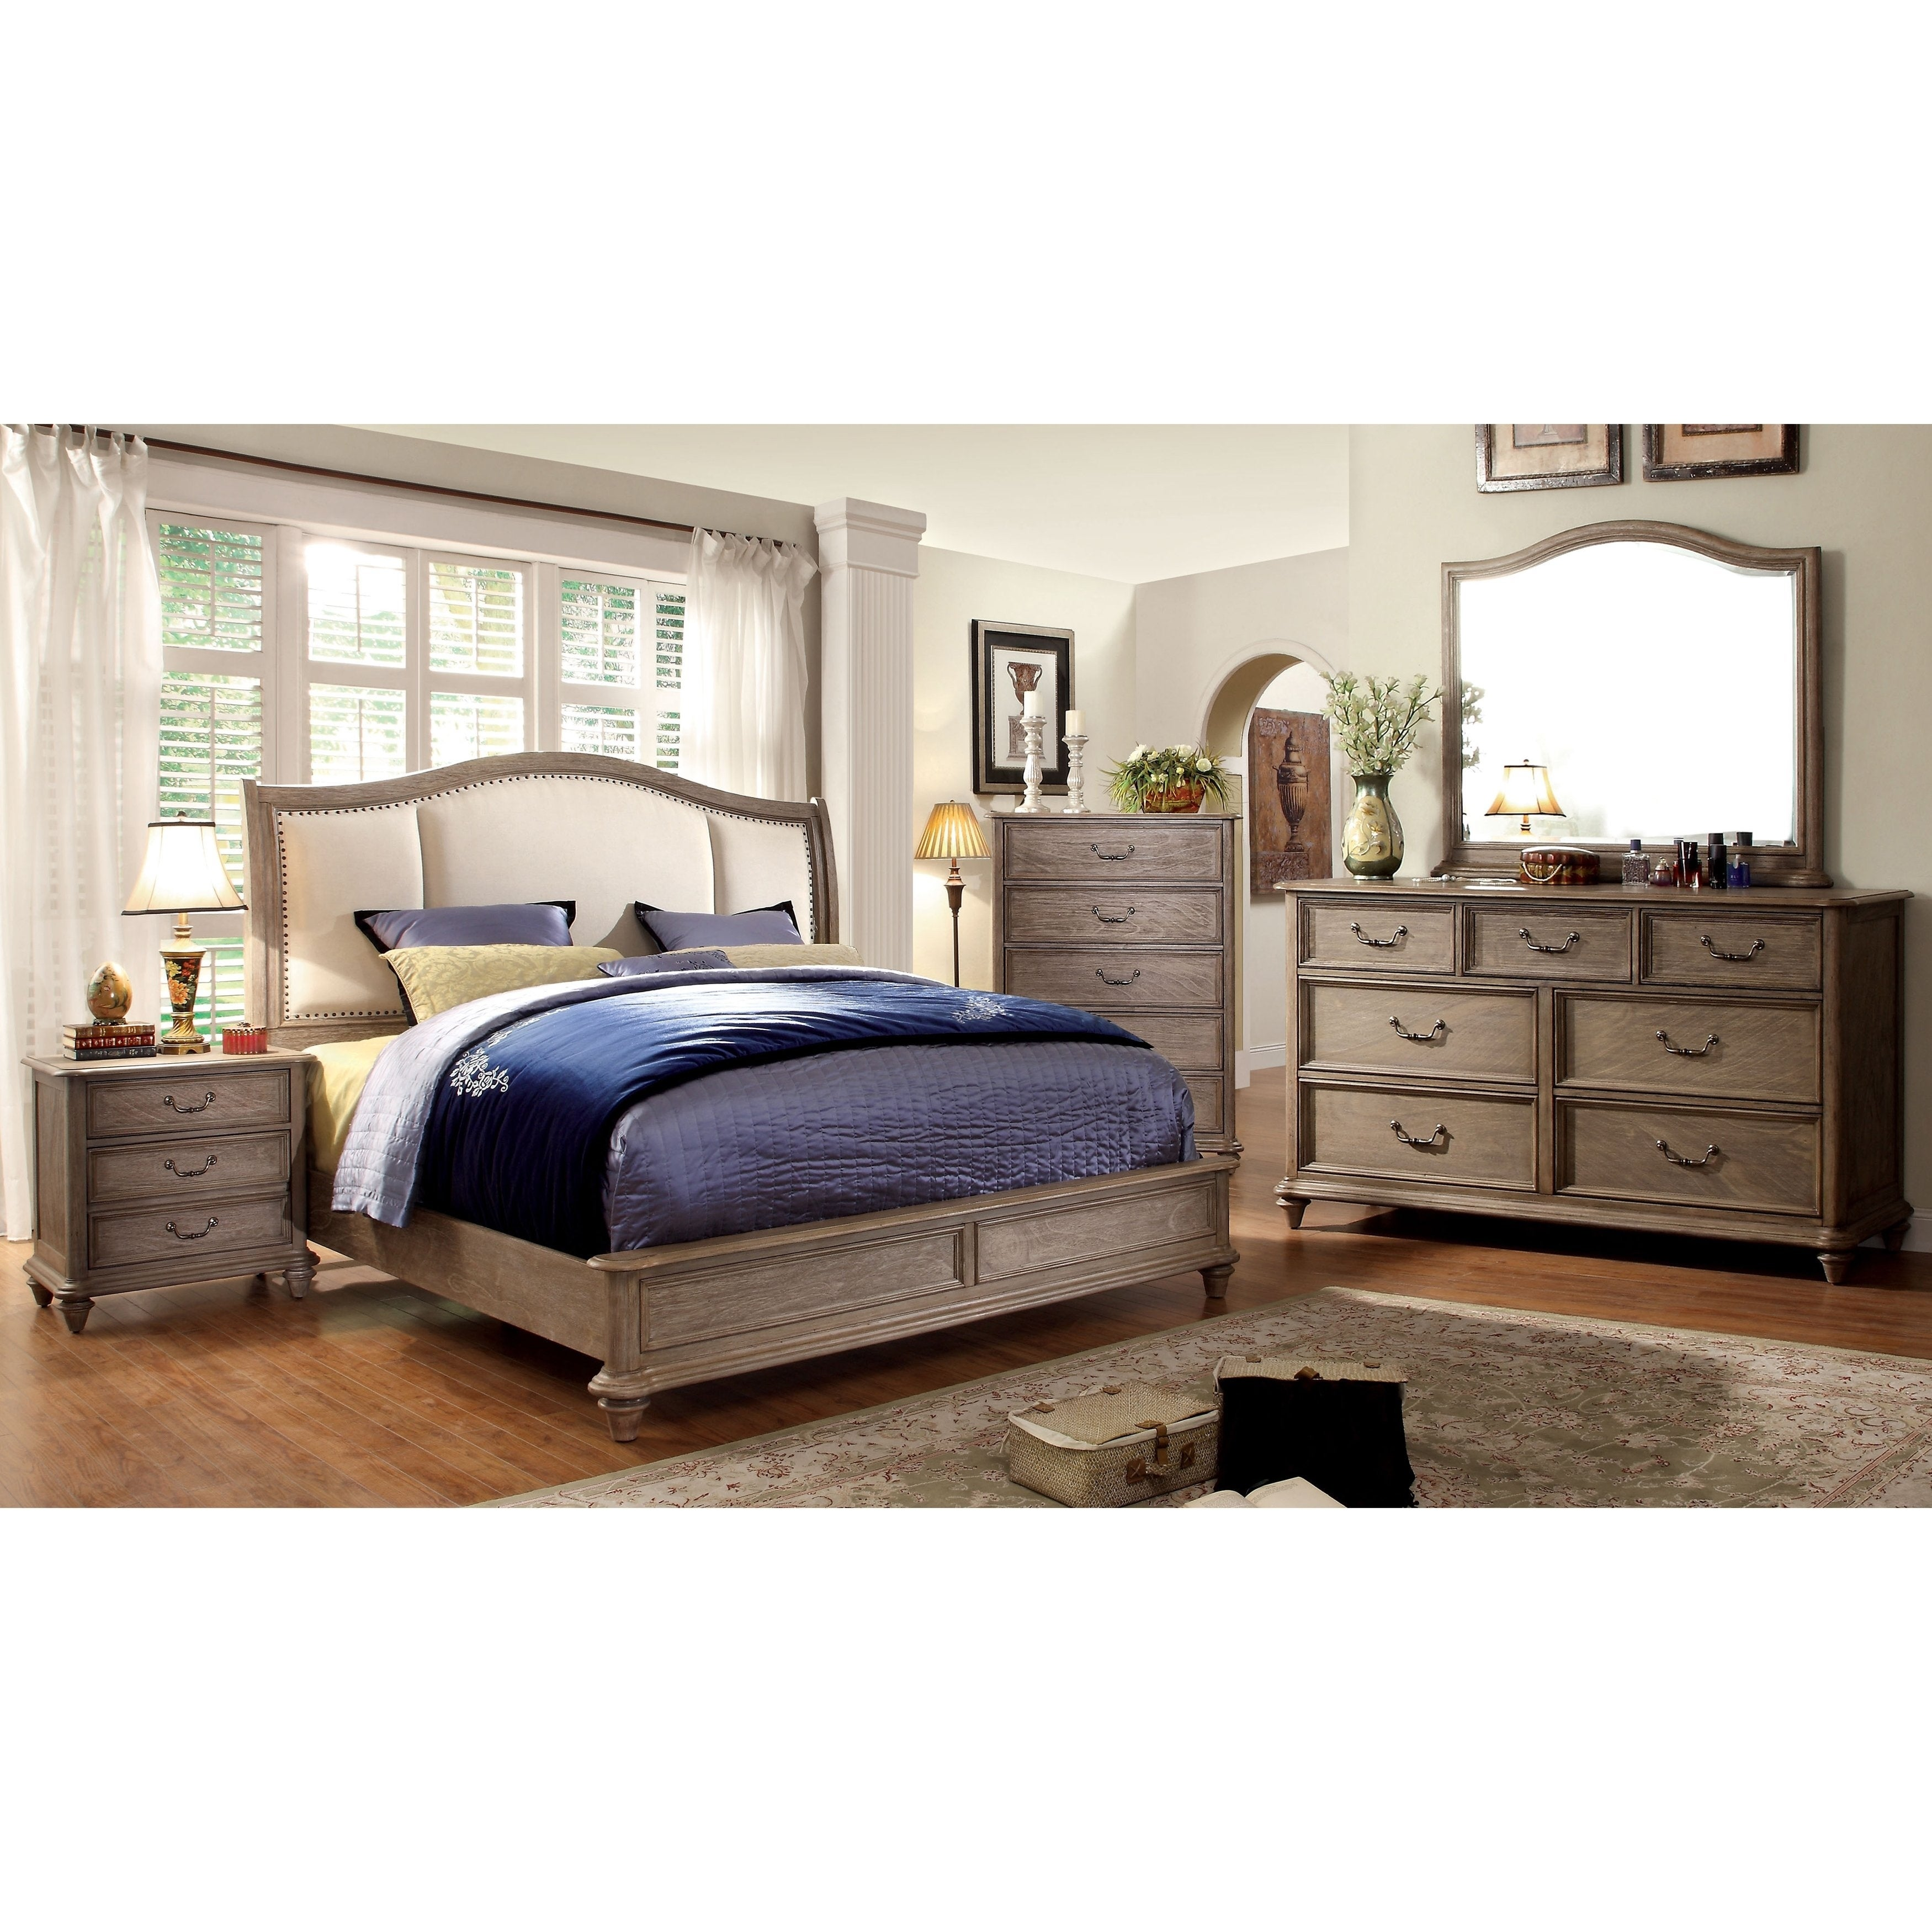 Furniture of America Minka II Rustic Natural Tone 4-Piece Bedroom Set